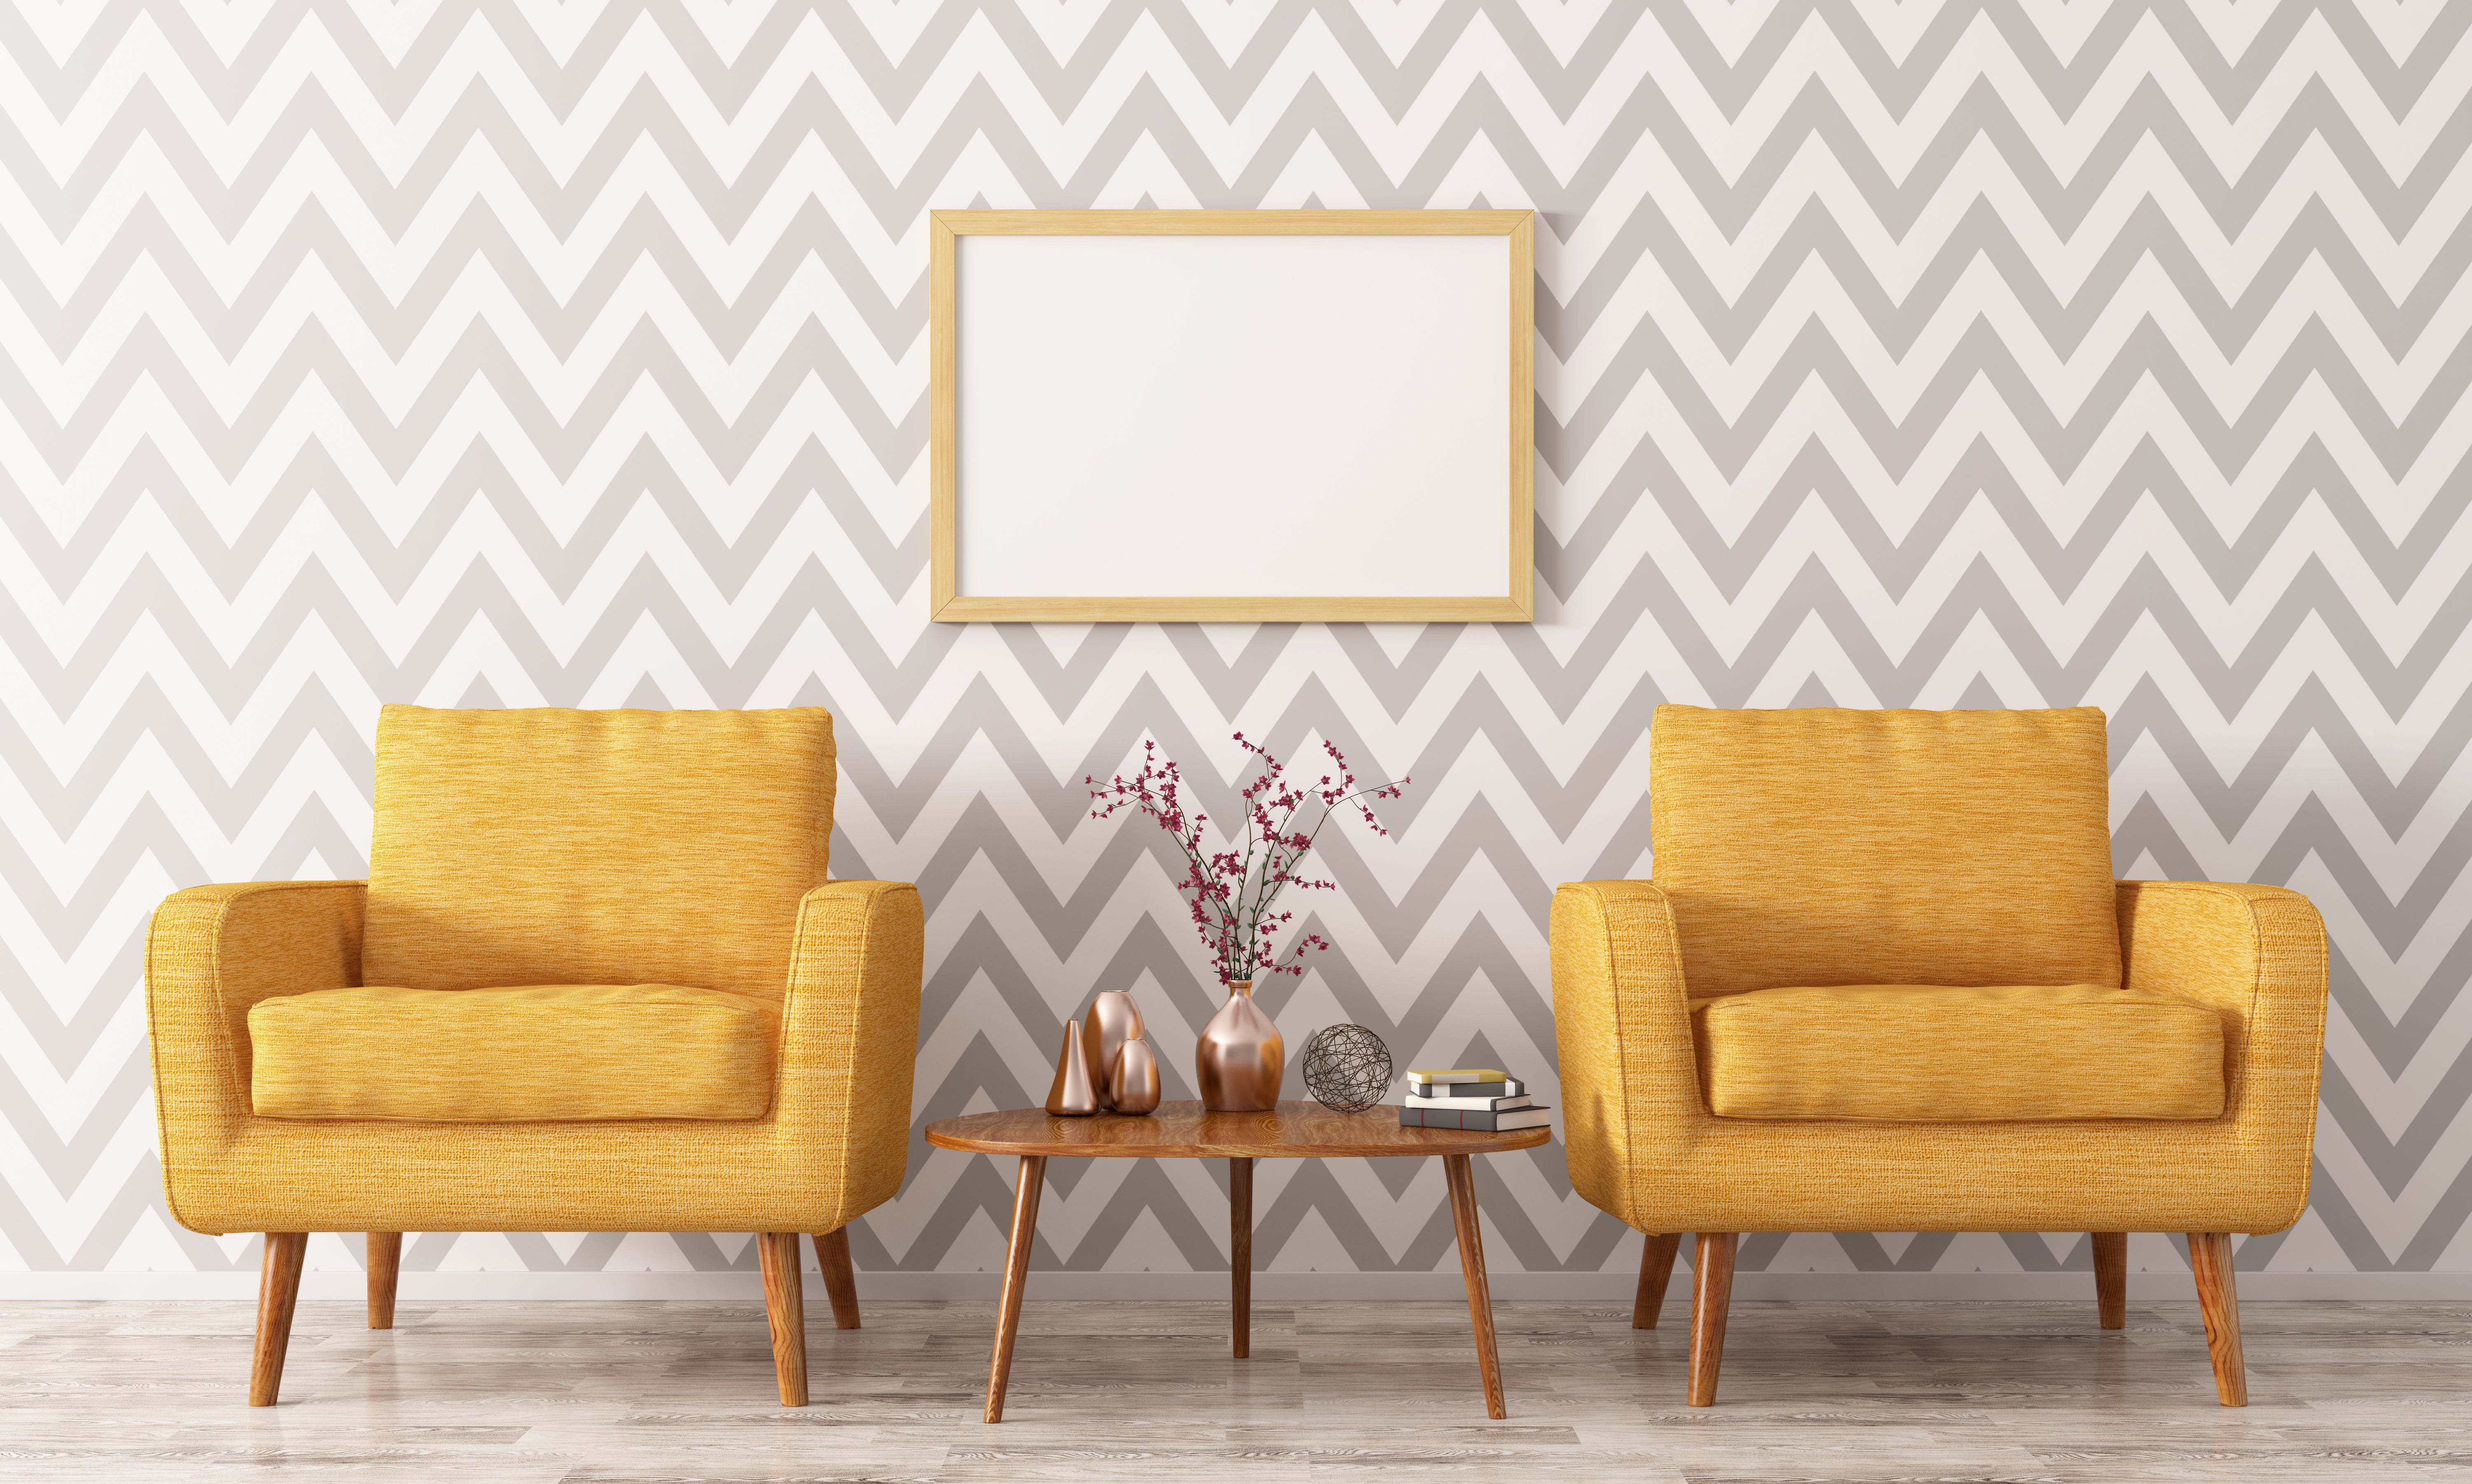 7 Of The Best Places To Buy Removable Wallpaper | HuffPost